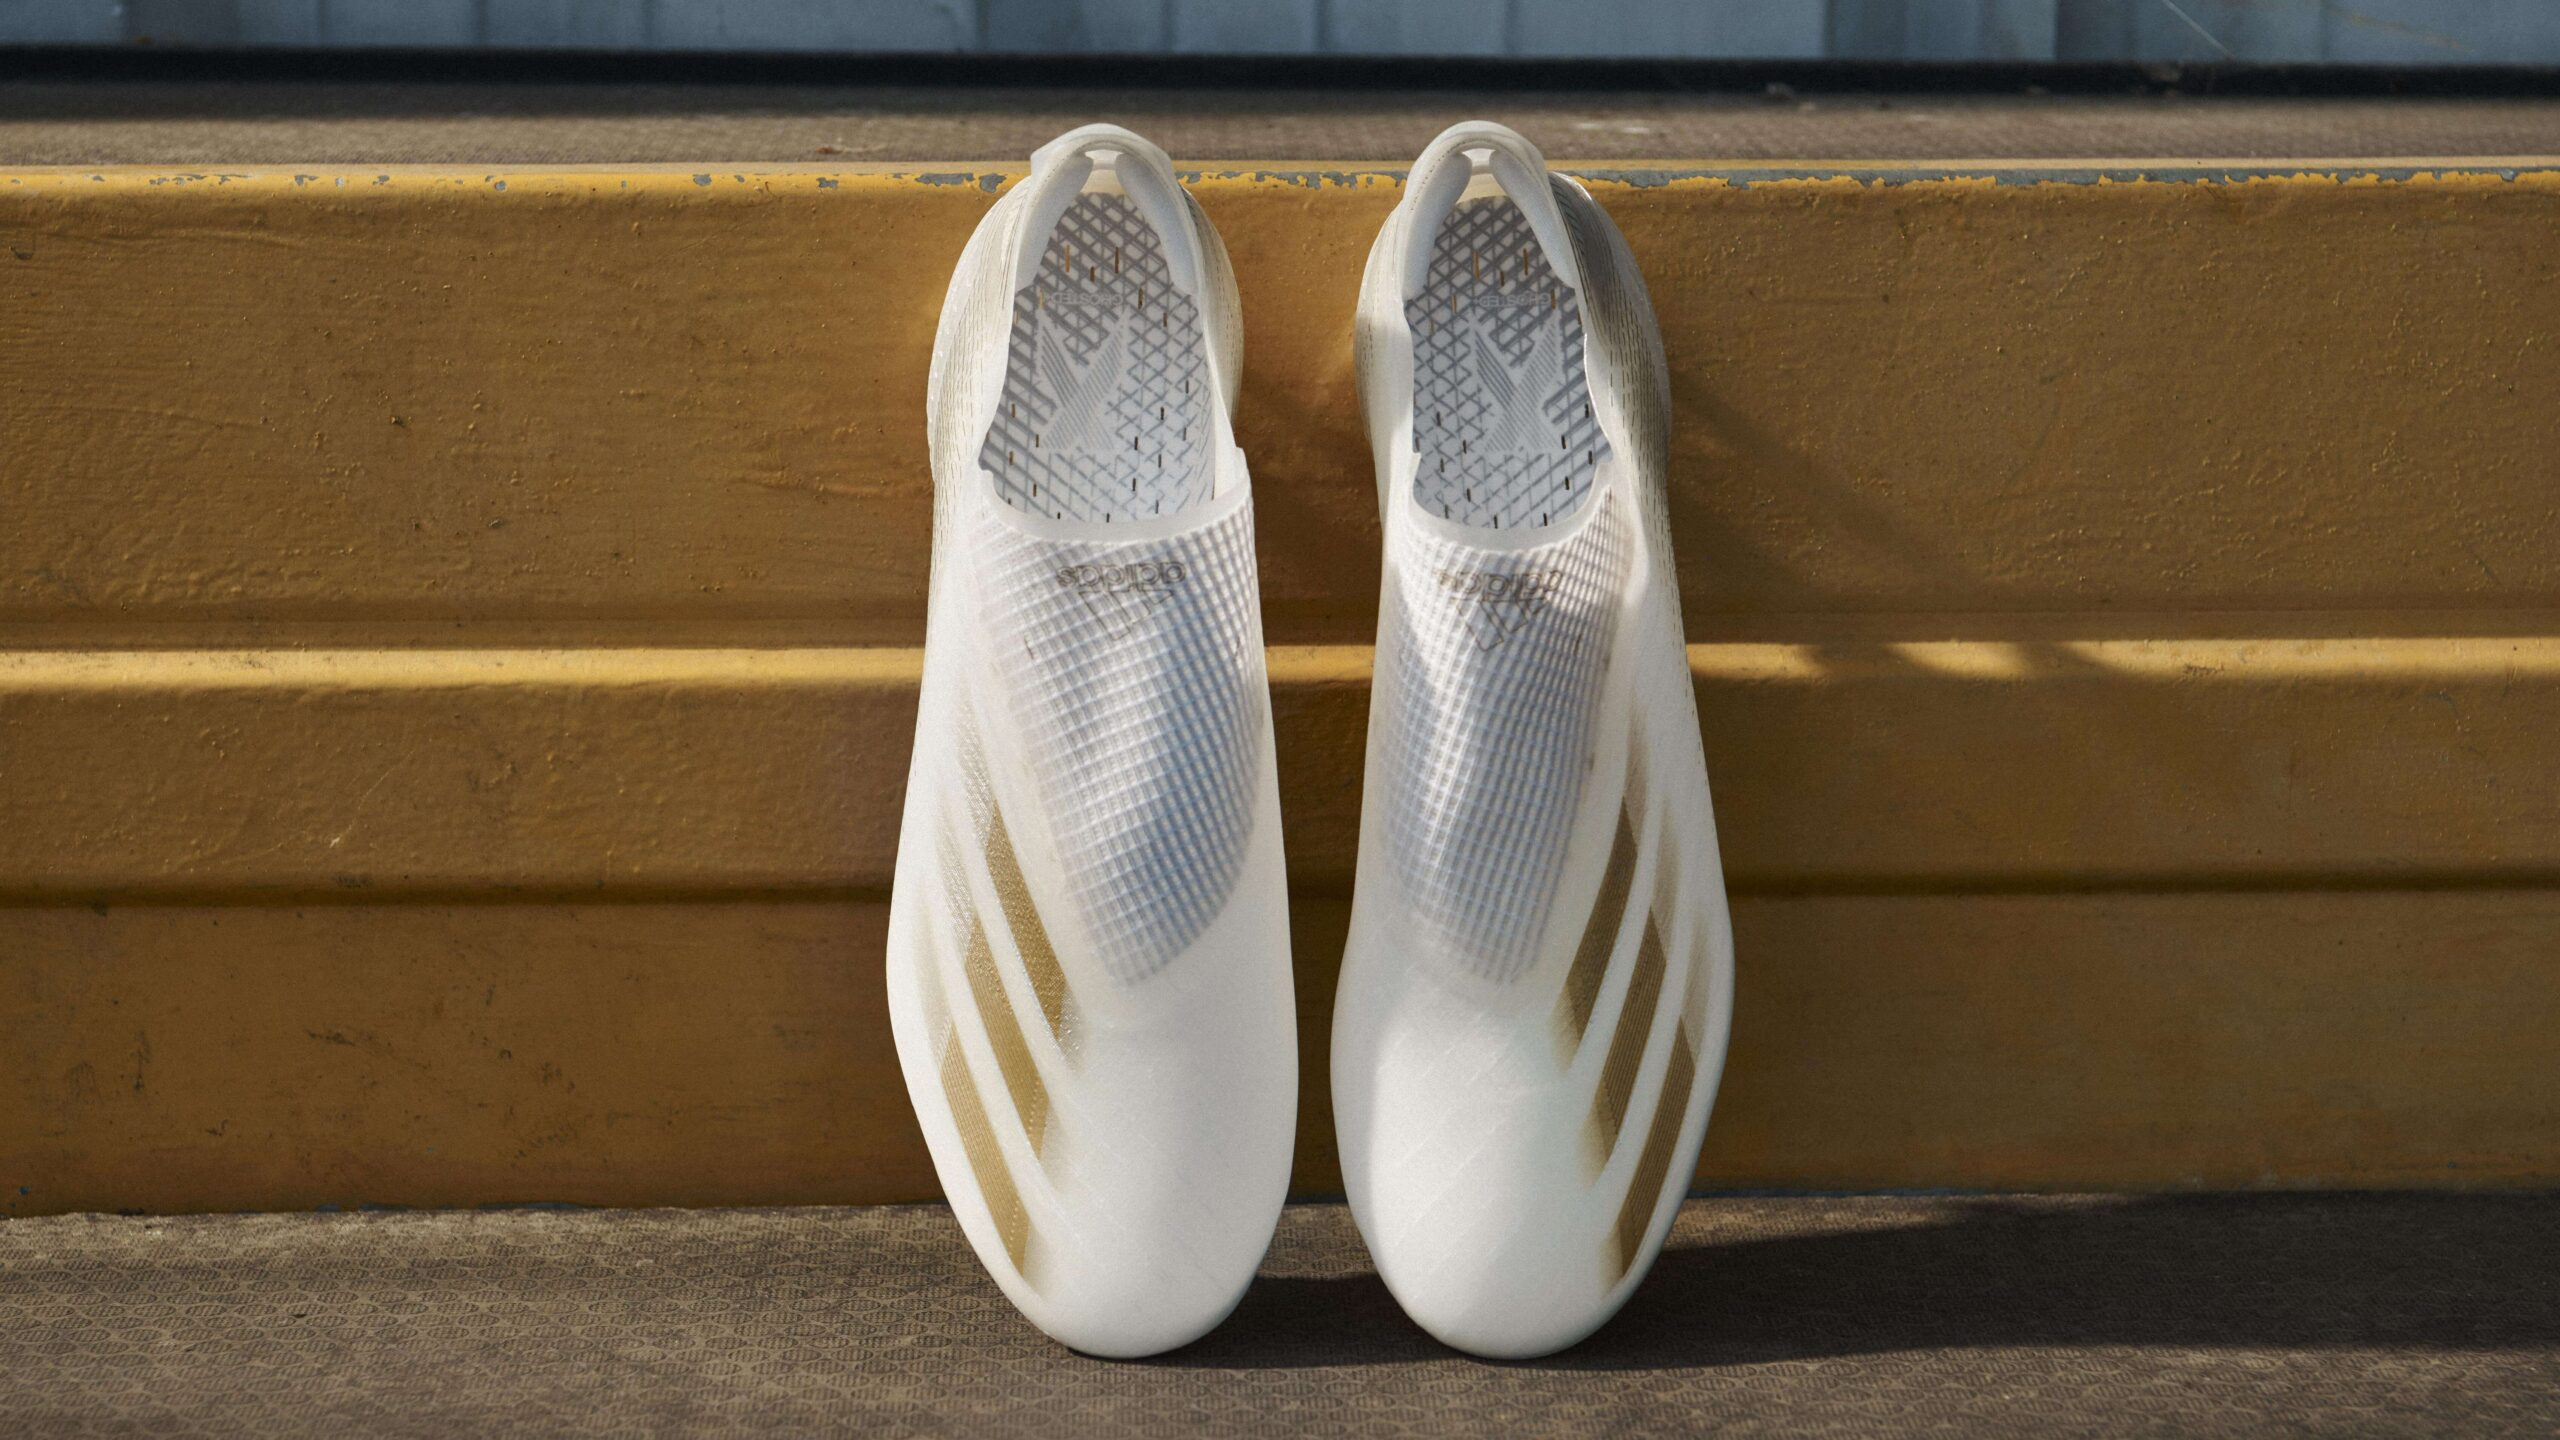 adidas X Ghosted Soccer Boots 2